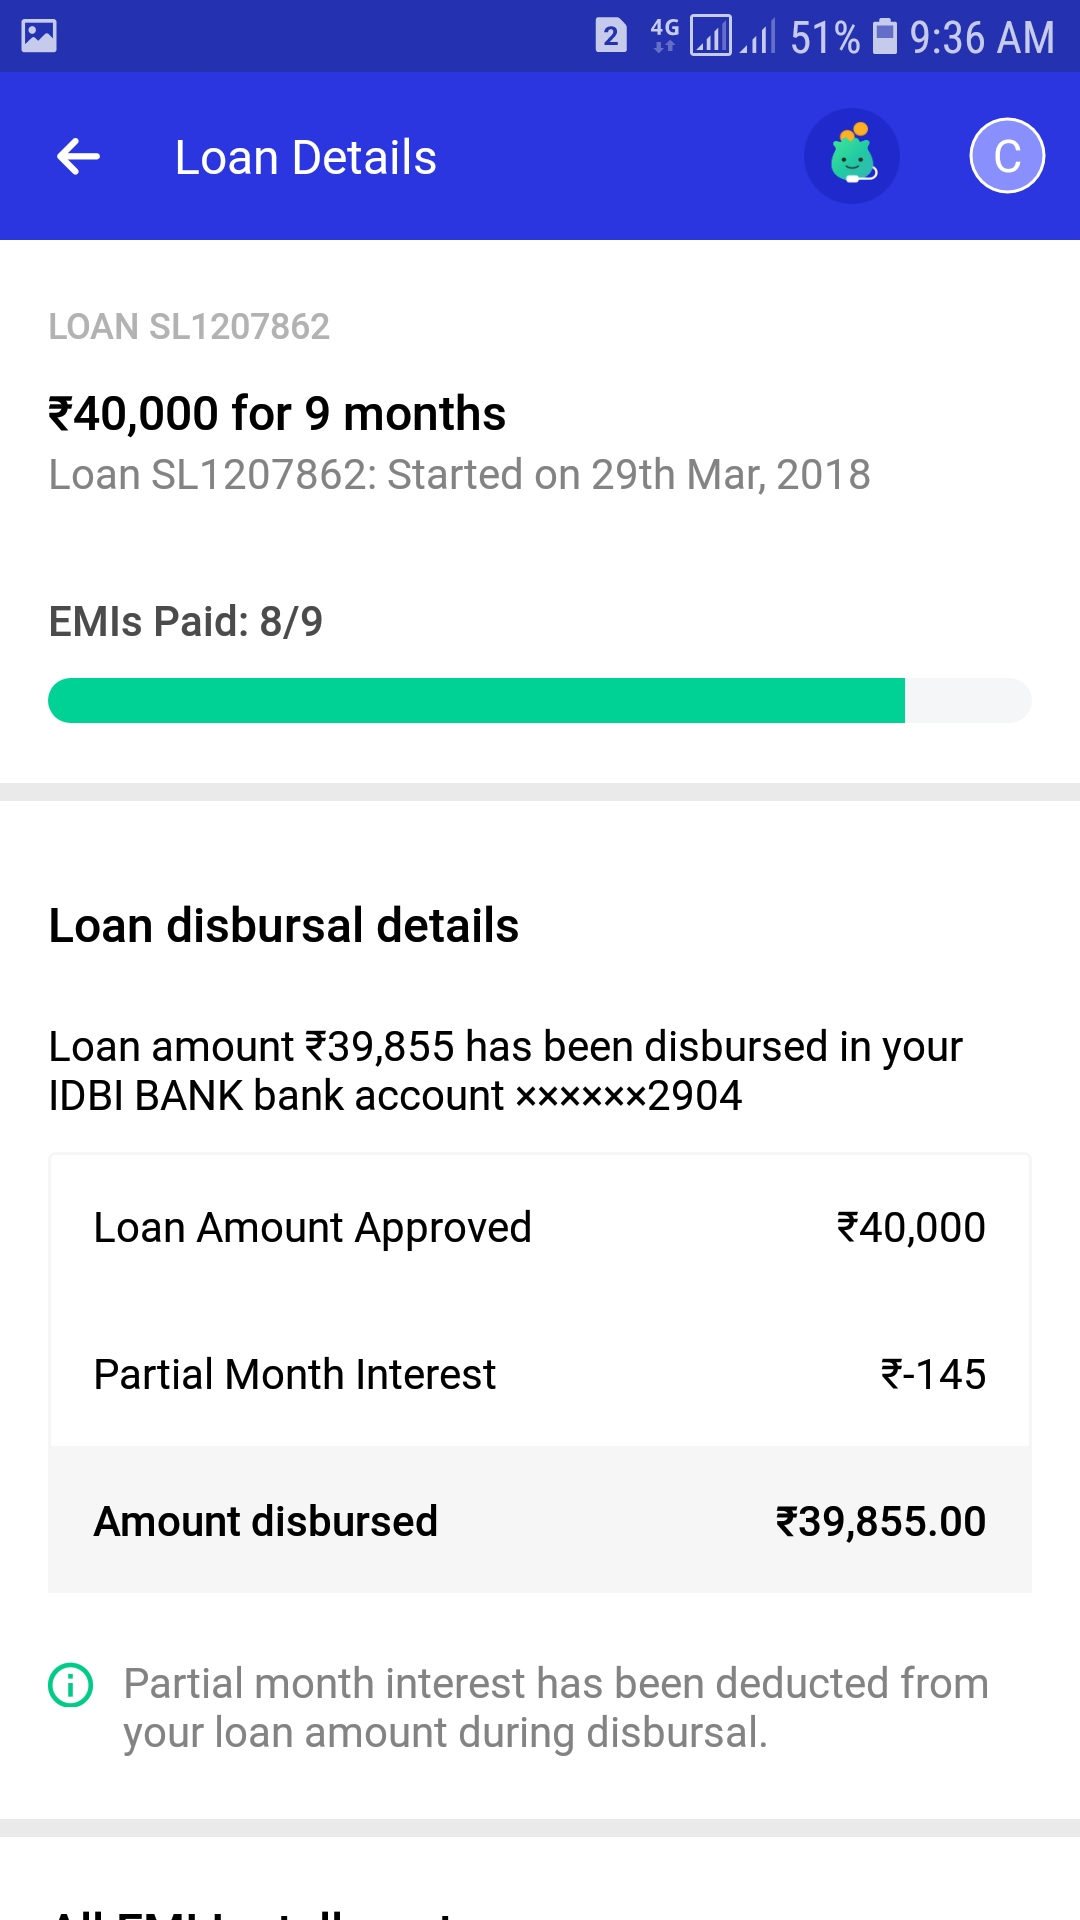 Loan disbursal